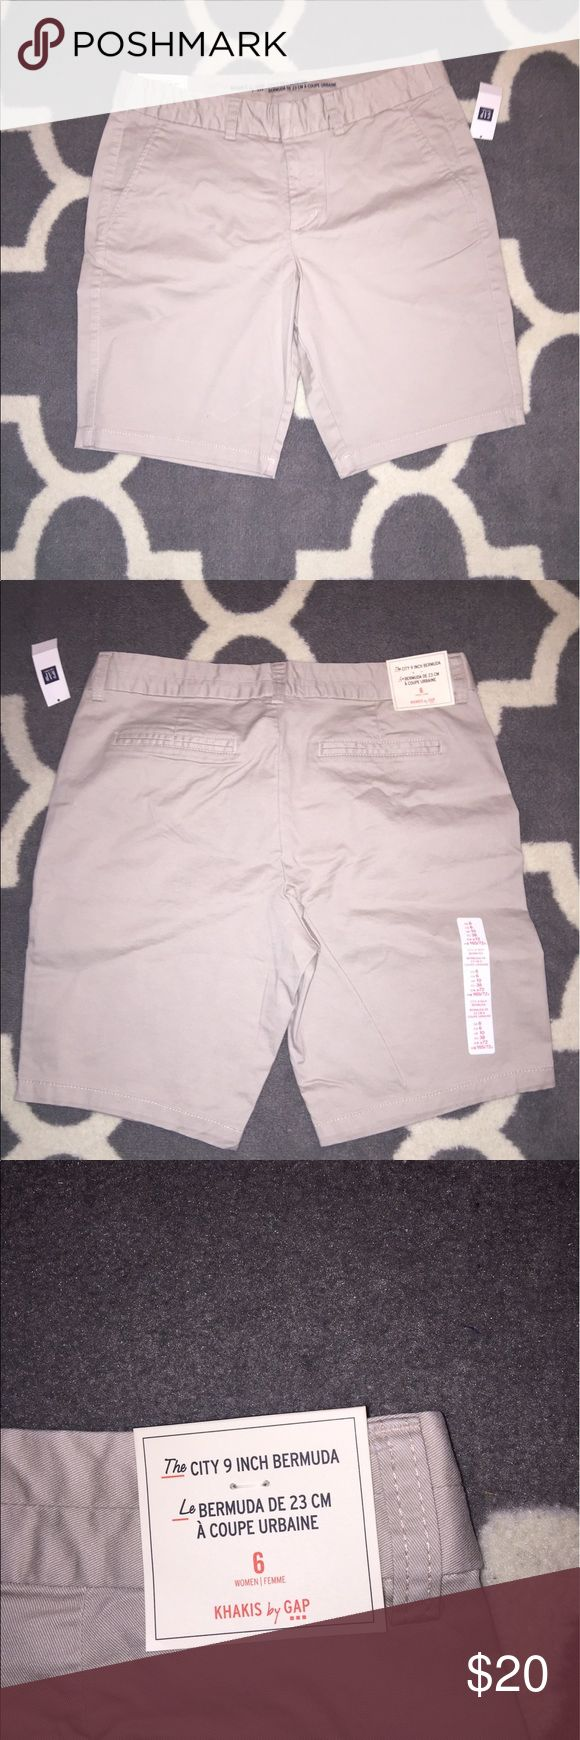 Women gap Bermuda shorts Women gap Bermuda shorts. Size 6. Brand new with tags, from the gap factory, bought this year GAP Shorts Bermudas